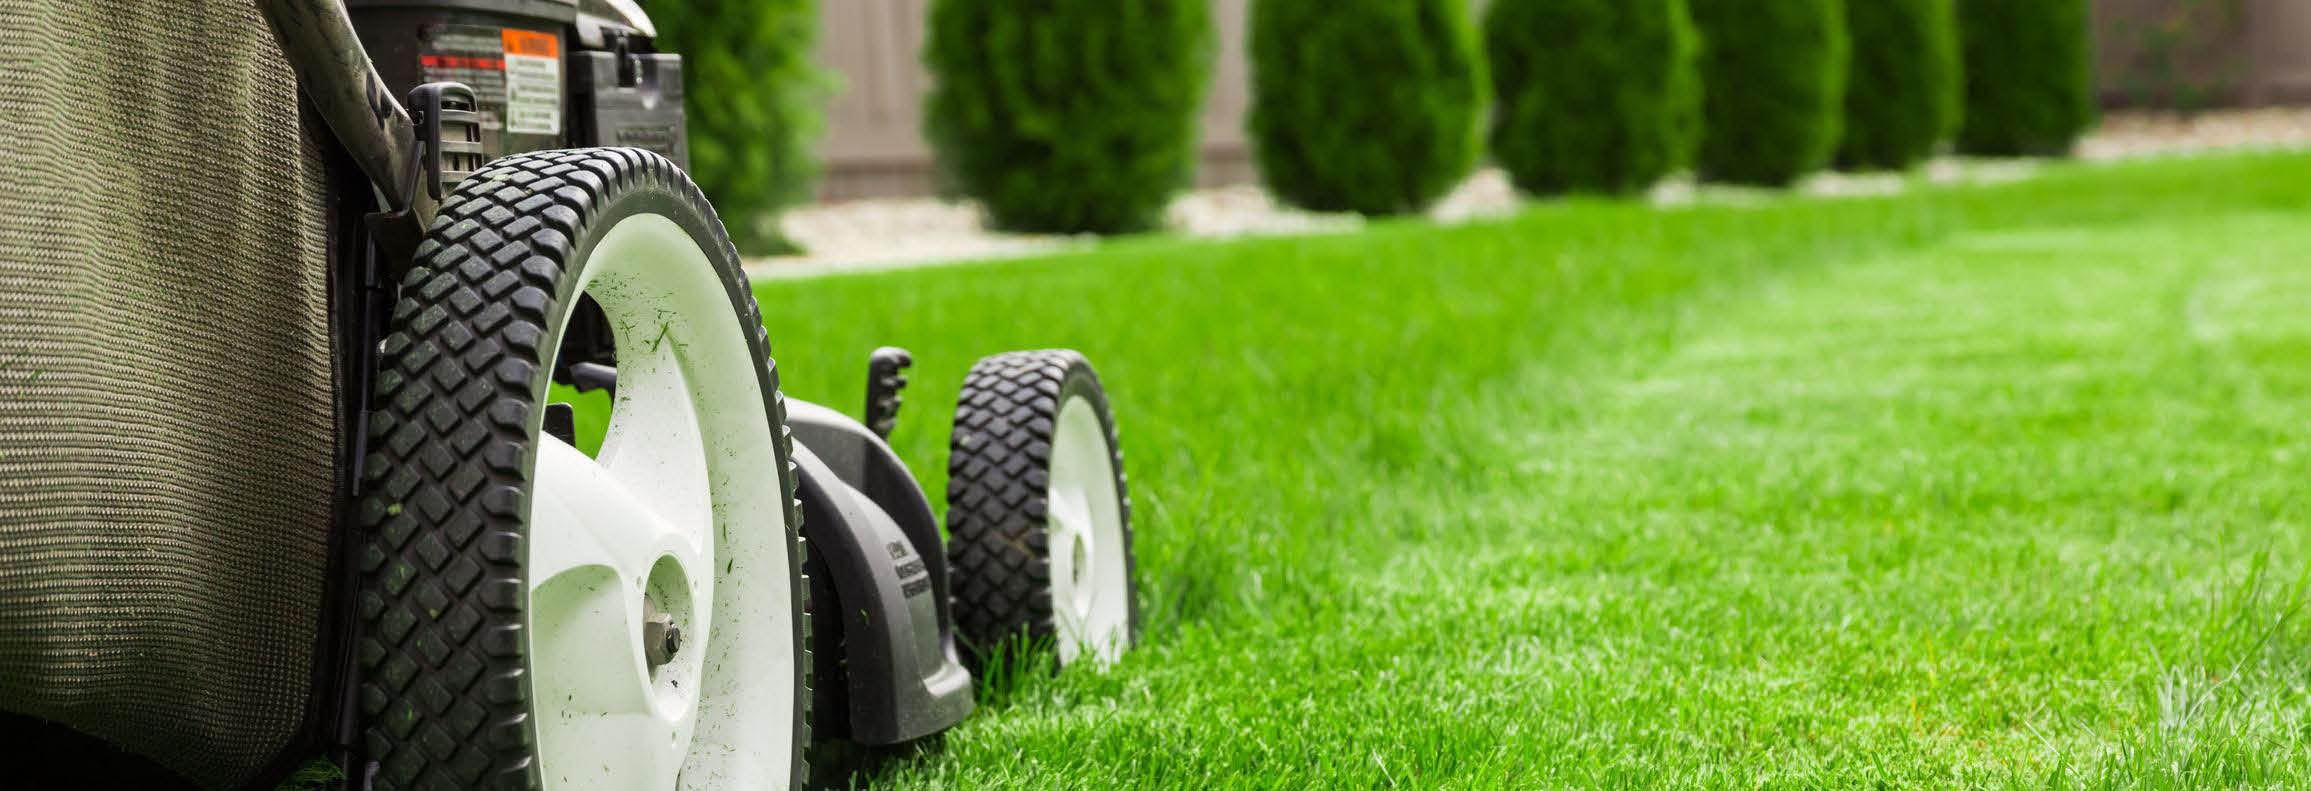 toledo mower center sylvania mower center lawn mower repair toledo ohio